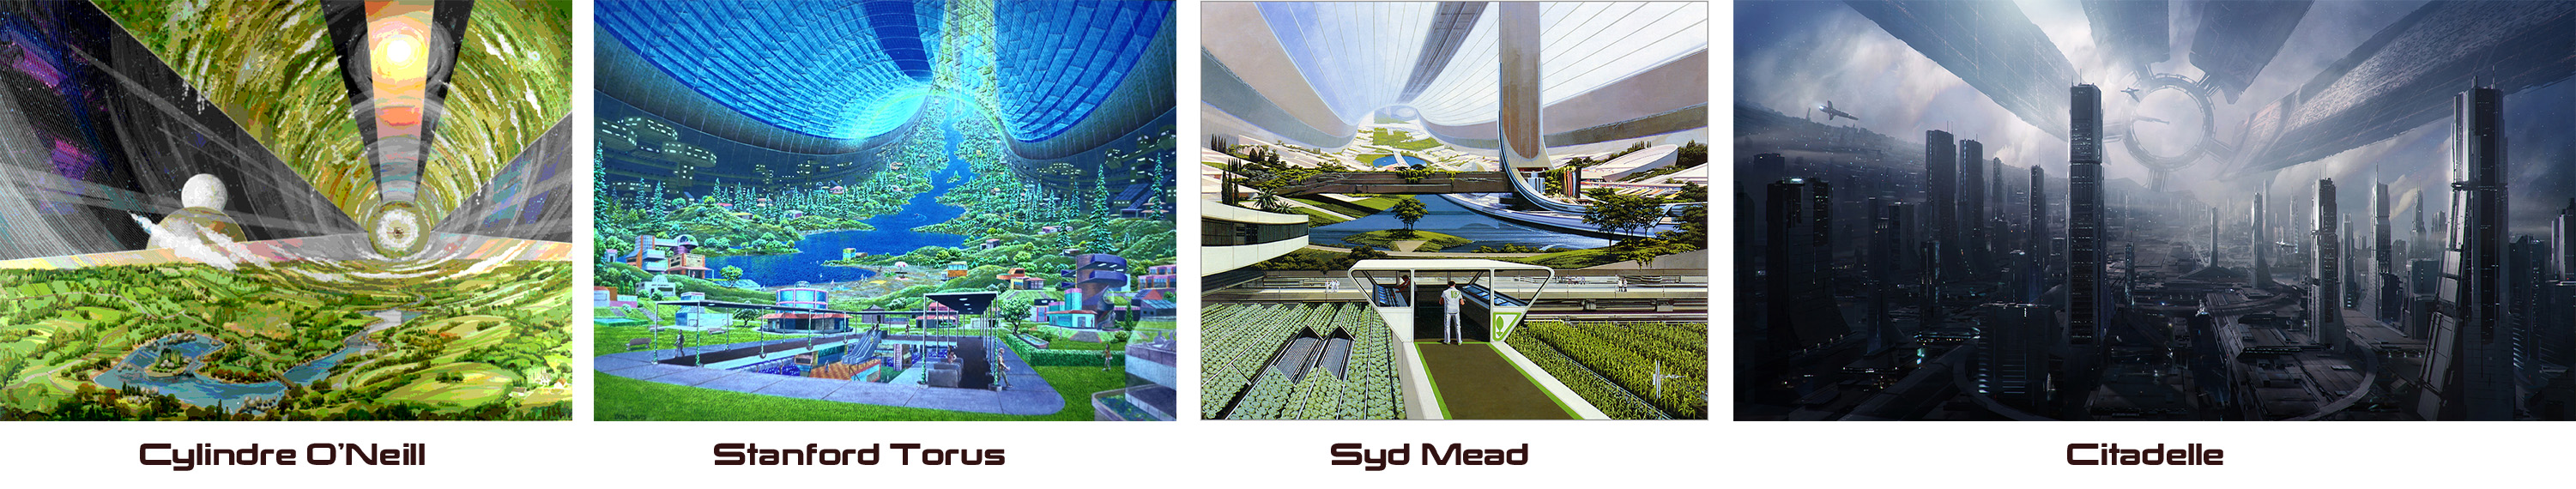 architecture-citadel-mead-stanford-oneill